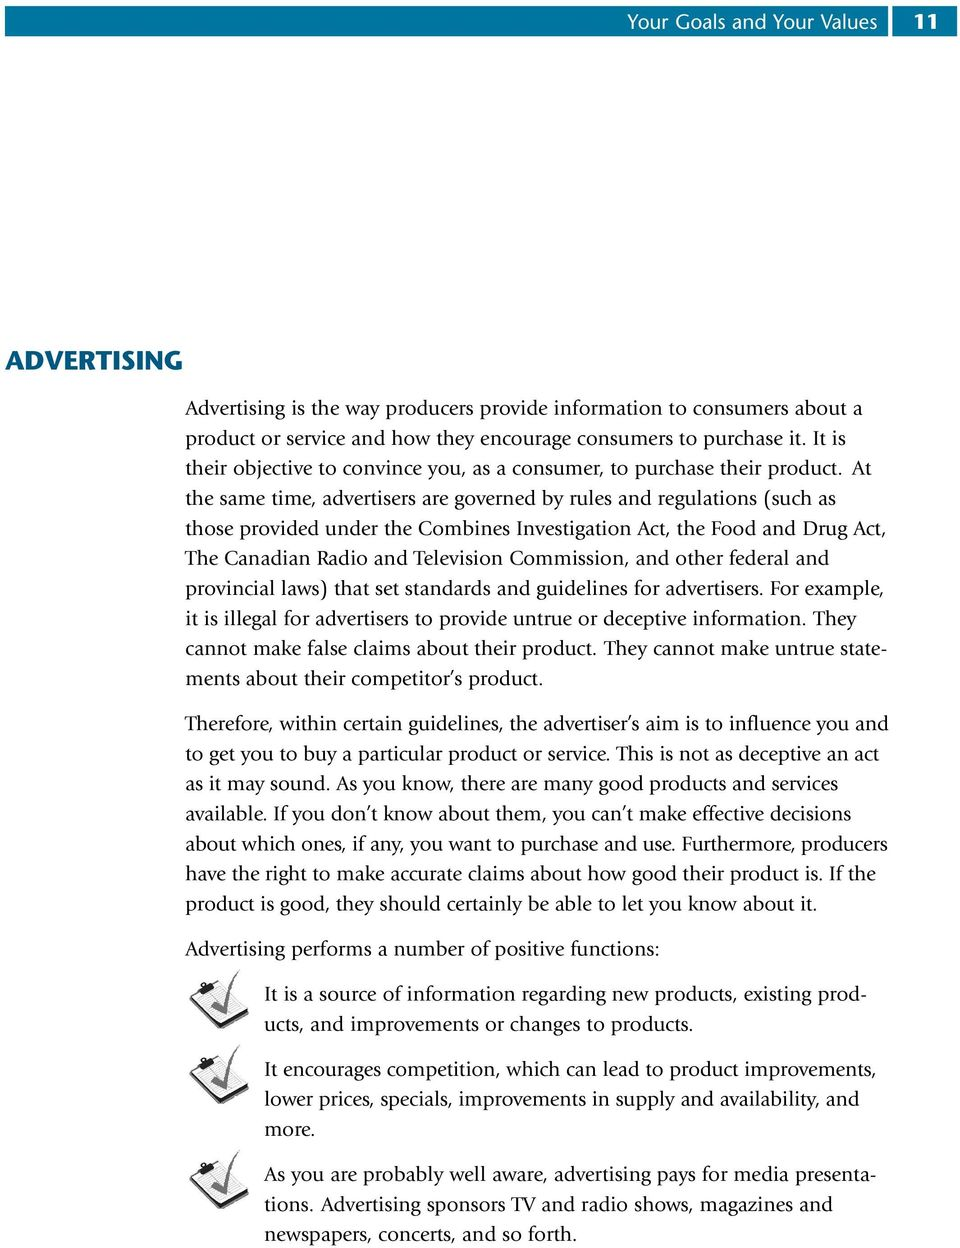 At the same time, advertisers are governed by rules and regulations (such as those provided under the Combines Investigation Act, the Food and Drug Act, The Canadian Radio and Television Commission,